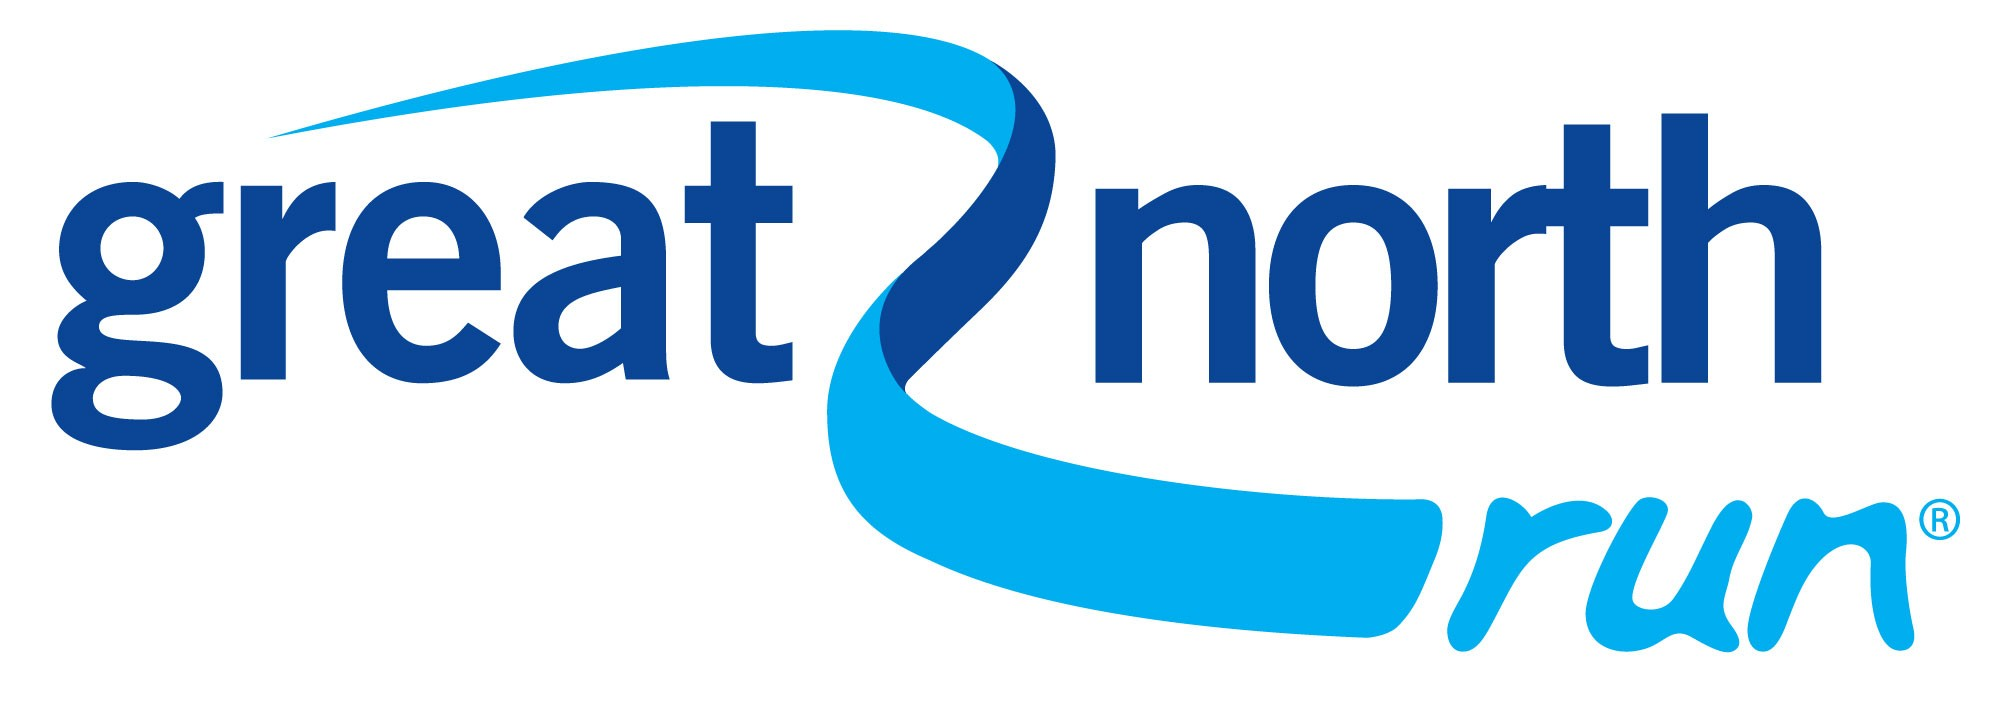 A copy of the Great North Run logo. Great North Run text in blue with a blue swirl through the text.